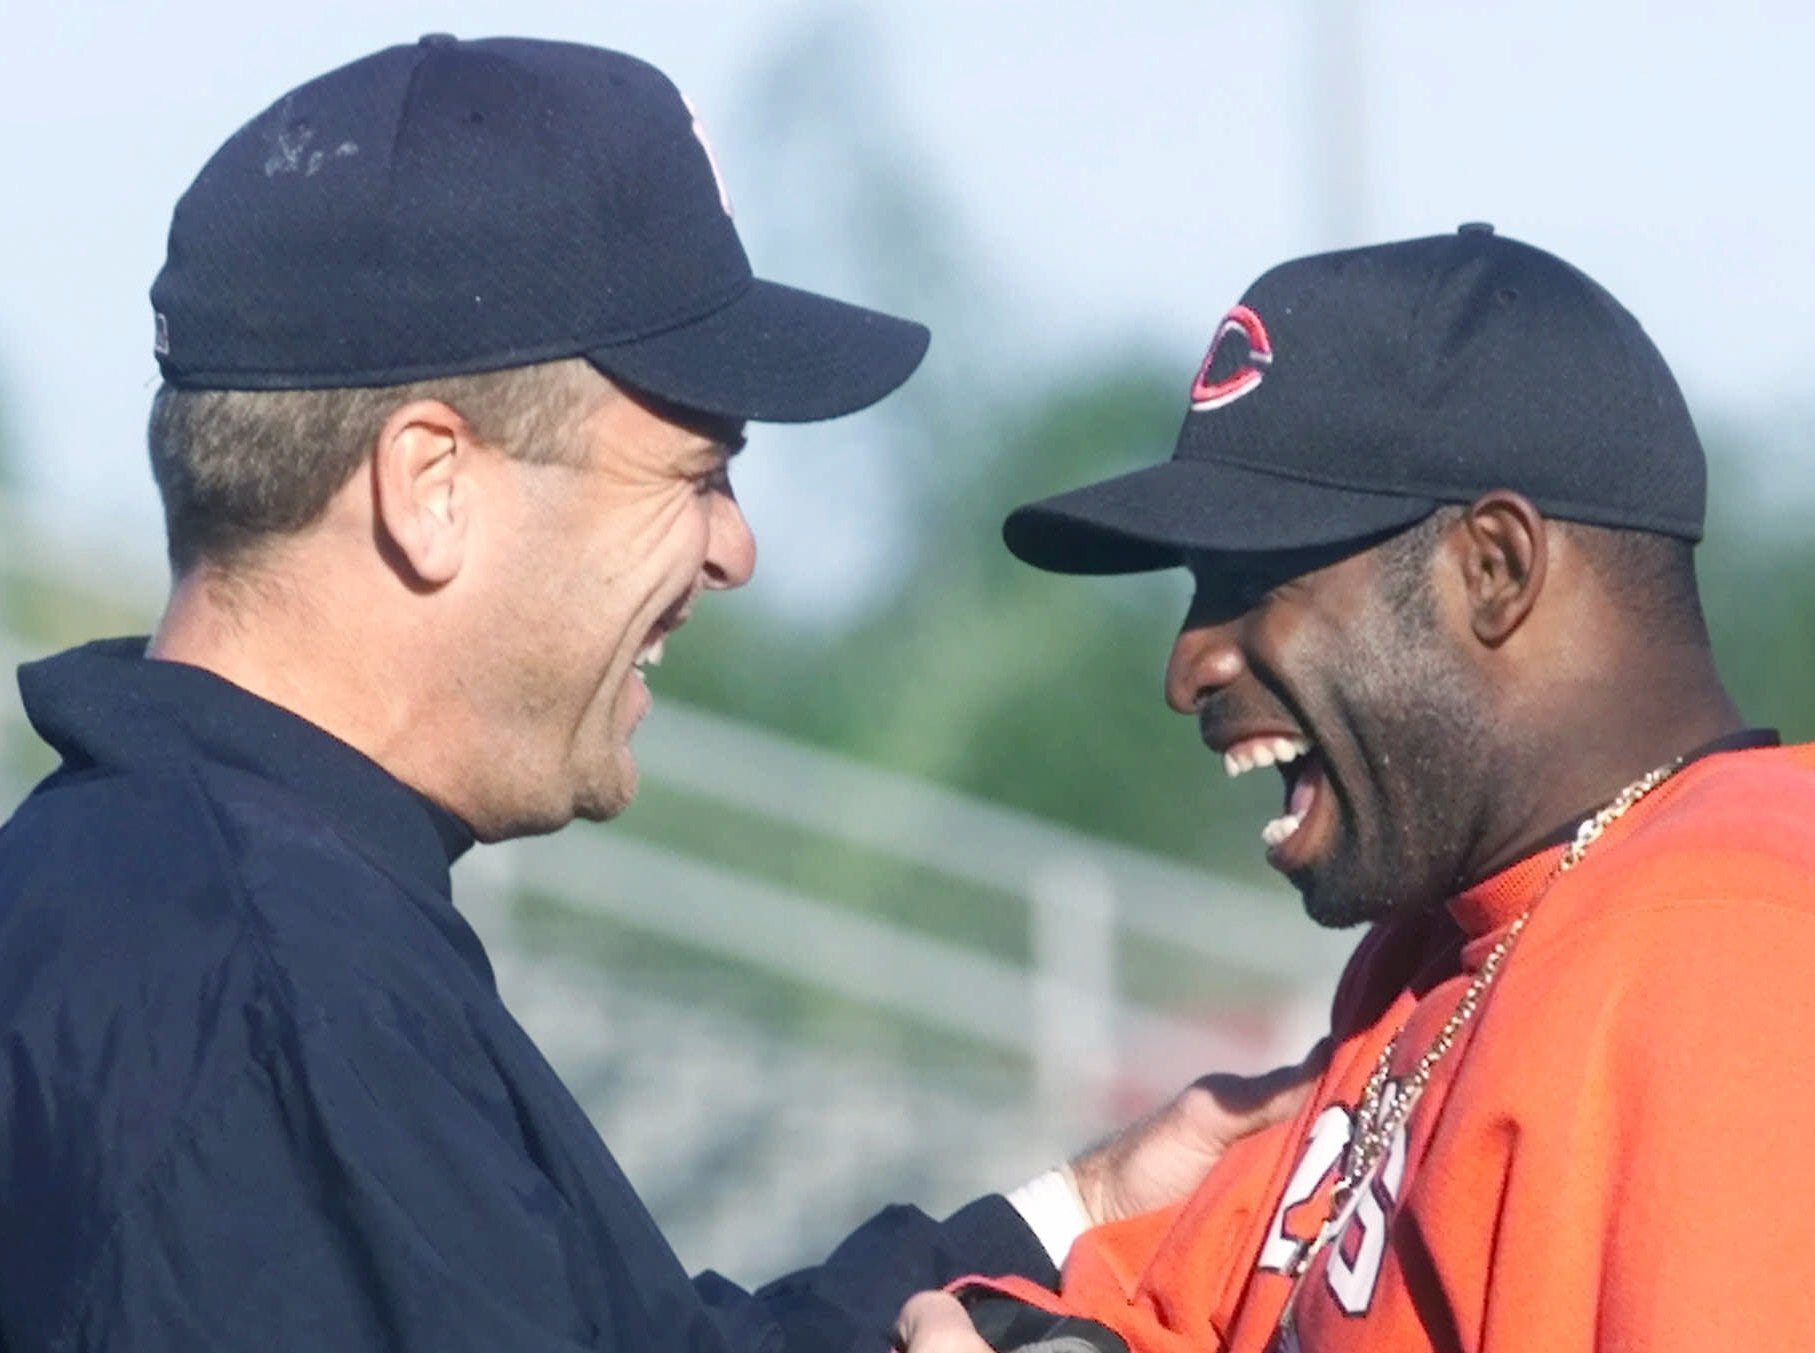 Text: New York Yankees catcher Joe Oliver, left, and Cincinnati Reds outfielder Deion Sanders enjoy a laugh during batting practice prior to their exhibition game Tuesday, March 6, 2001, in Sarasota, Fla. Oliver and Sanders were teammates on the 1997 Reds. (AP Photo/Al Behrman)